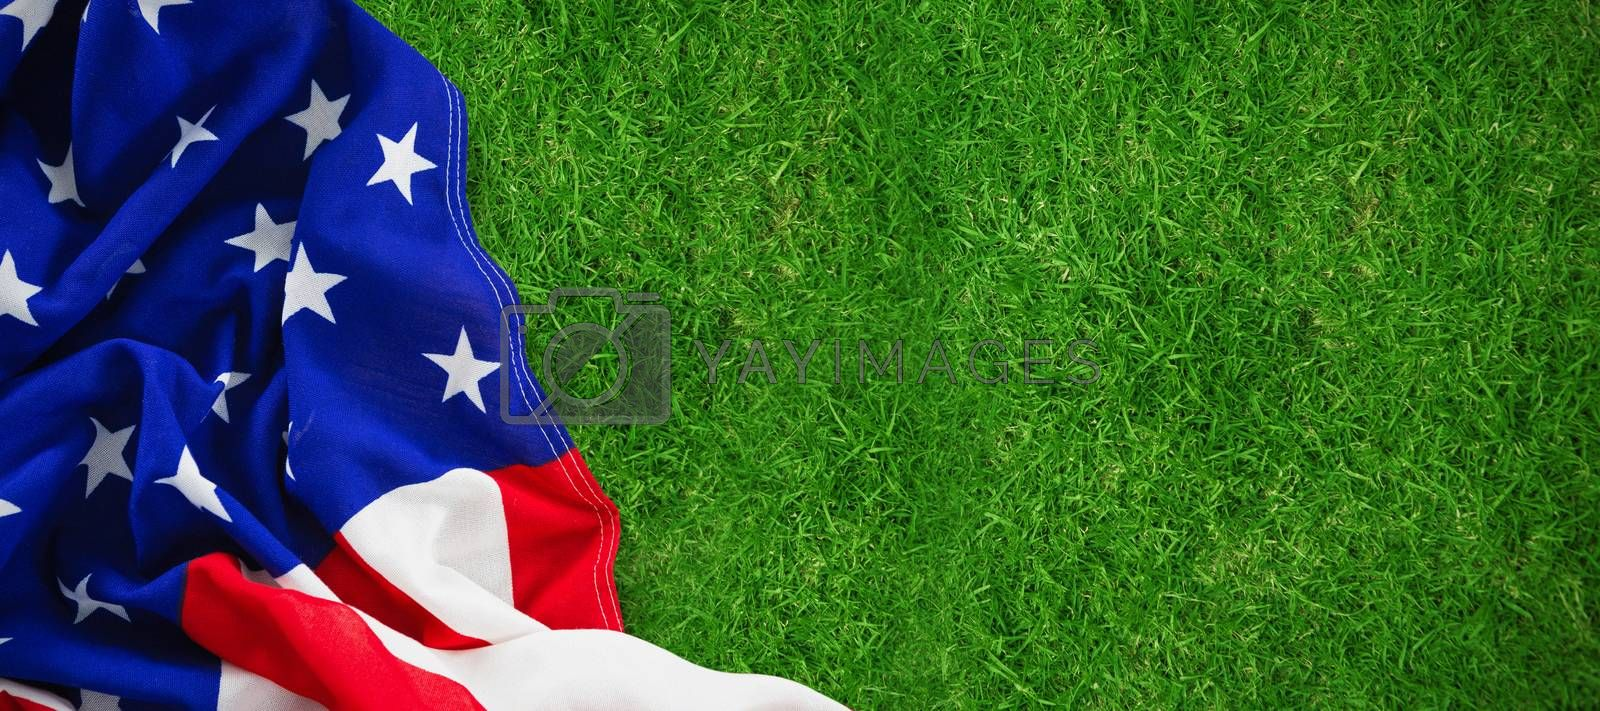 Close-up of American flag against closed up view of grass